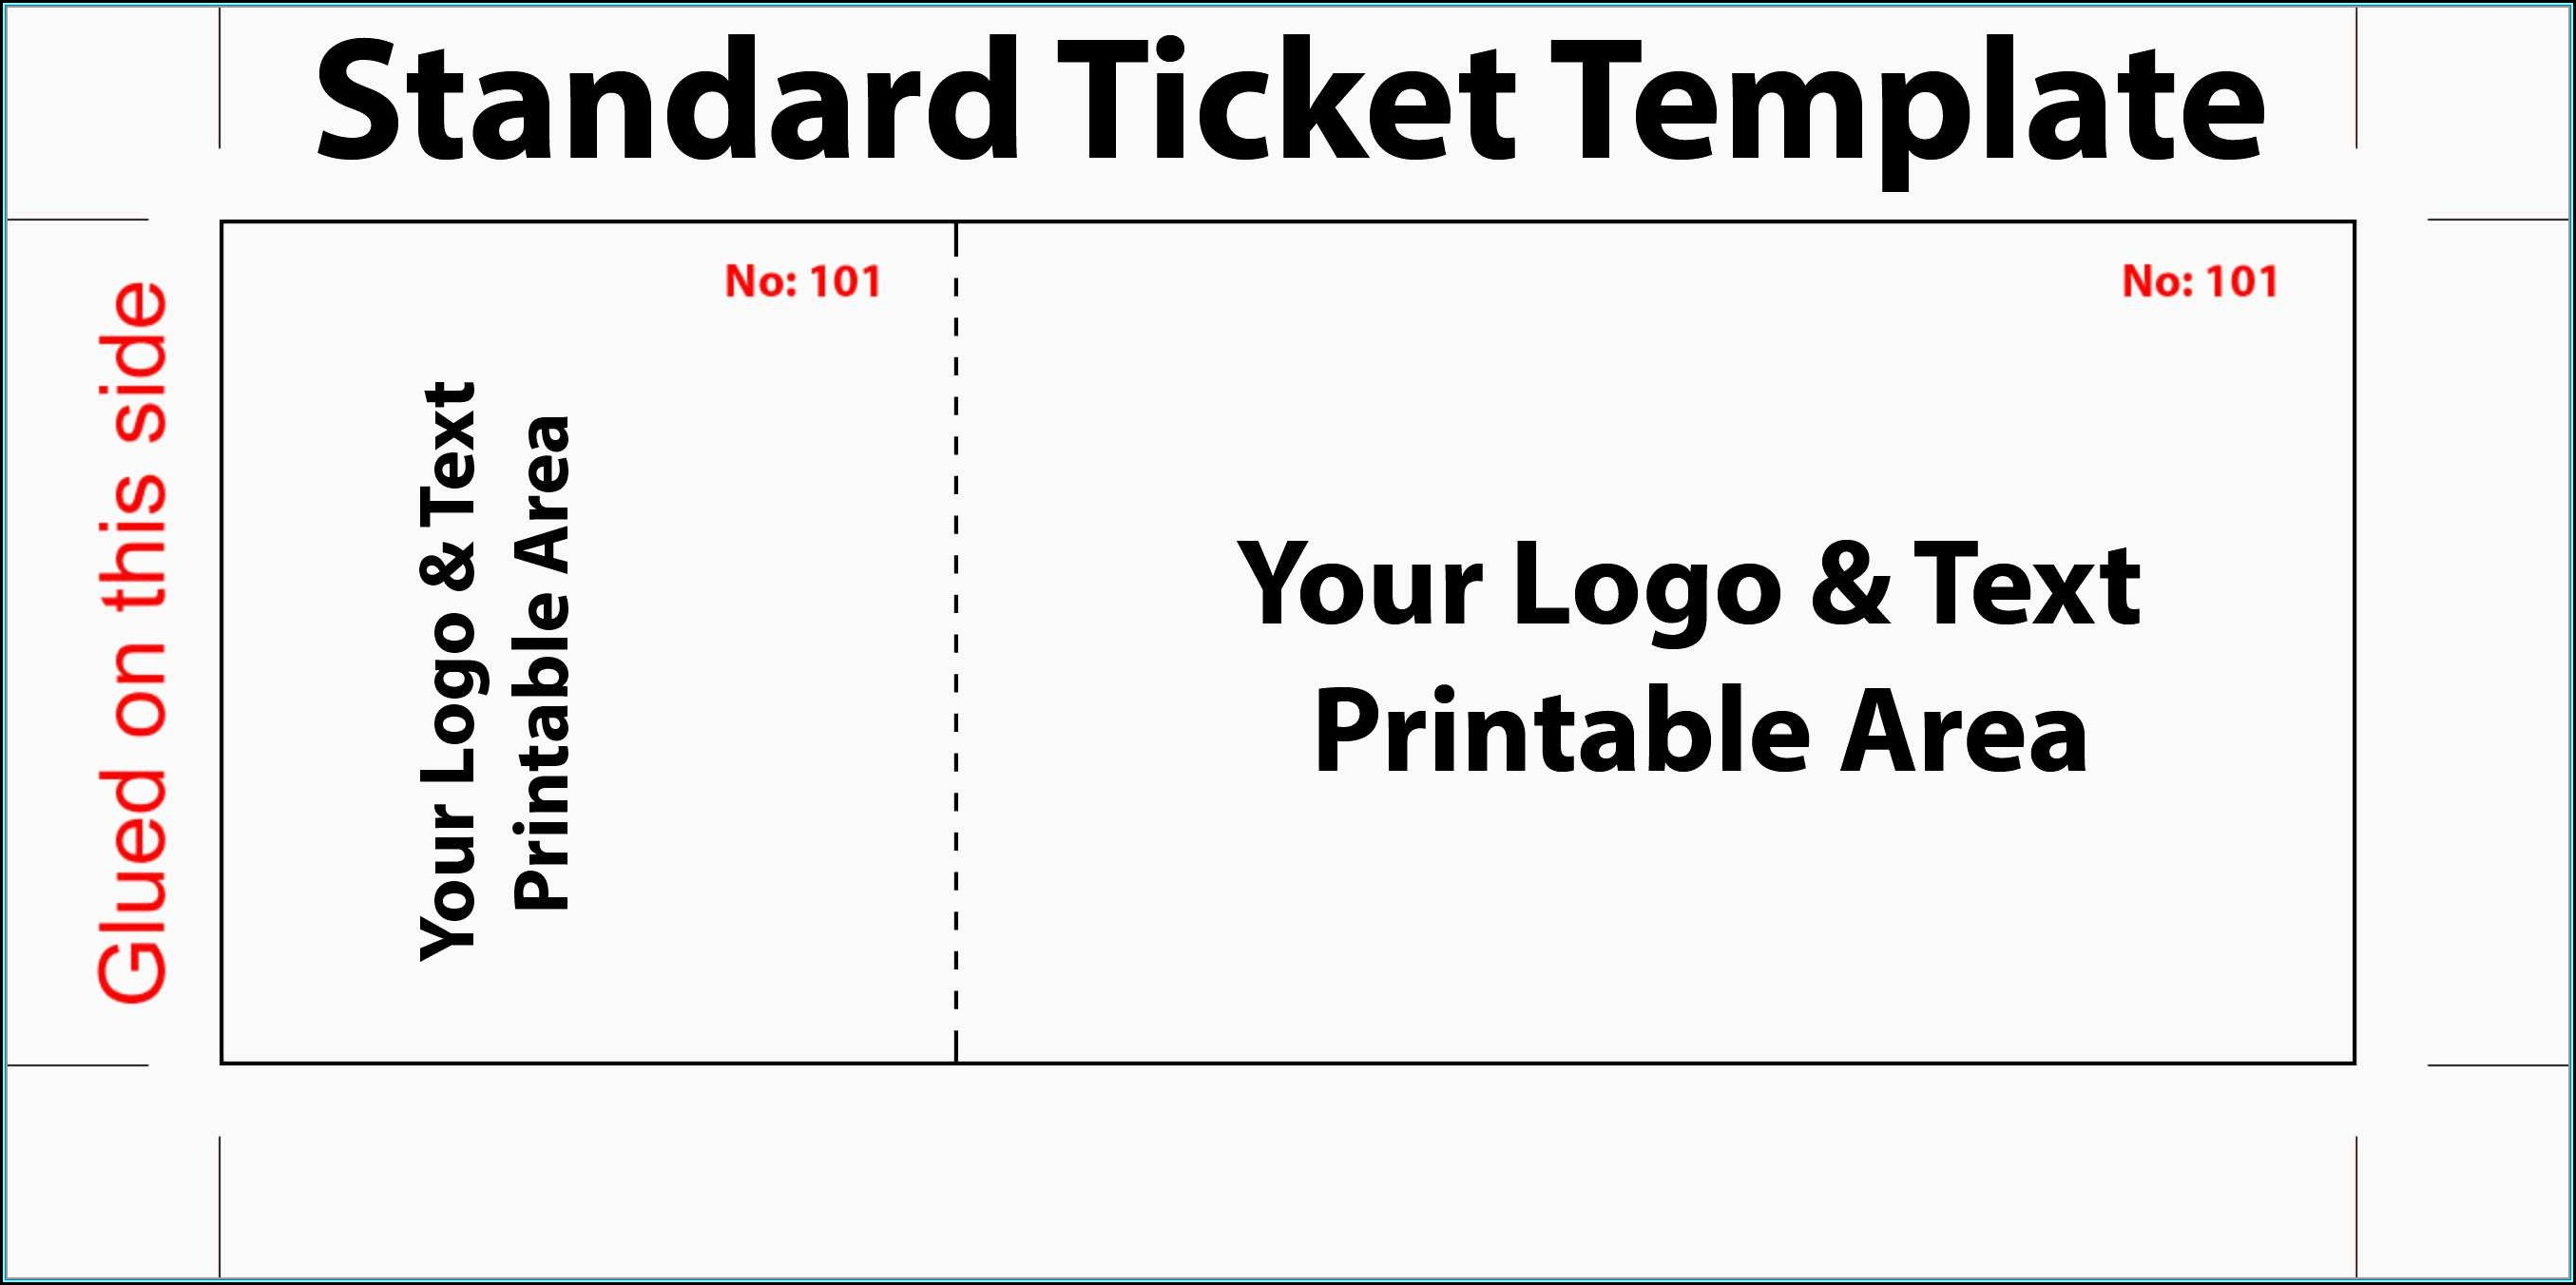 Raffle Ticket Template Excel Free - Template 1 : Resume ...